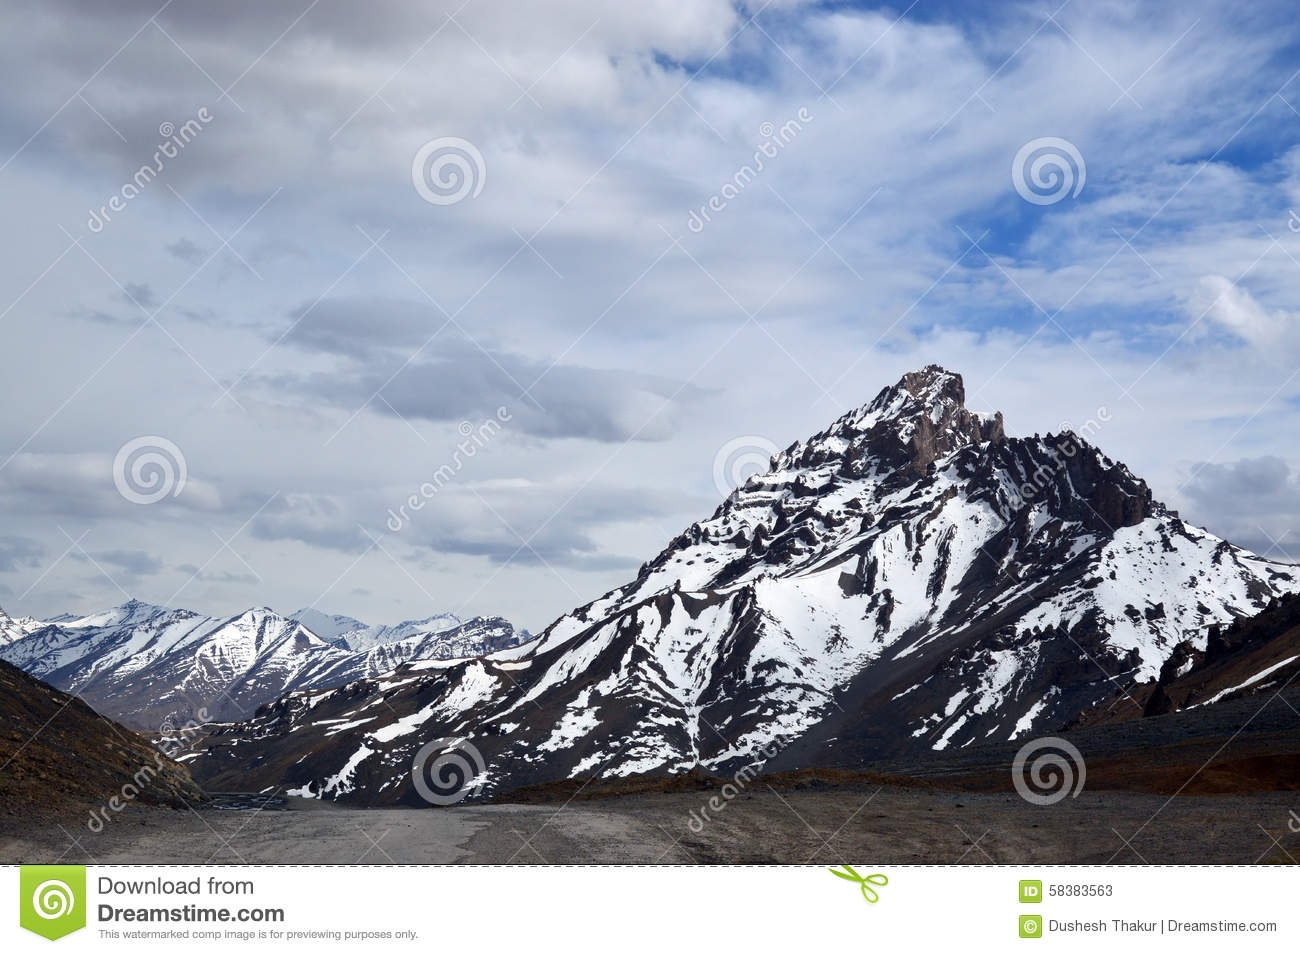 A snow capped mountain